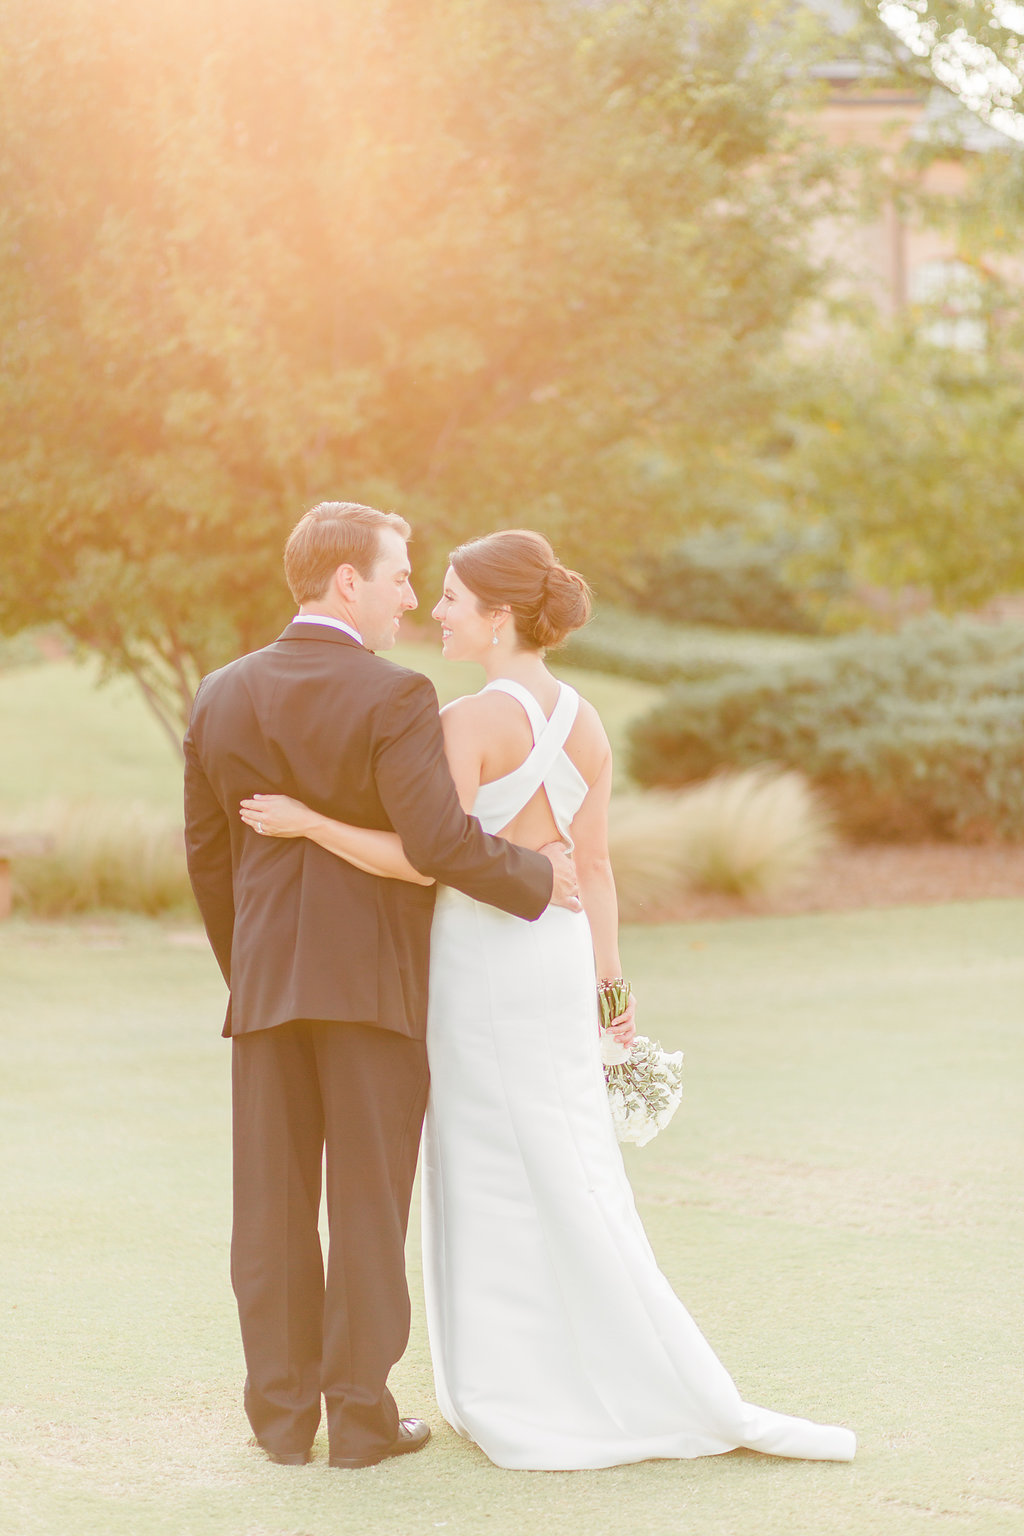 Gallardia-Oklahoma-City-Oklahoma-Wedding-Photographer-Holly-Felts-Photography-Photos-314